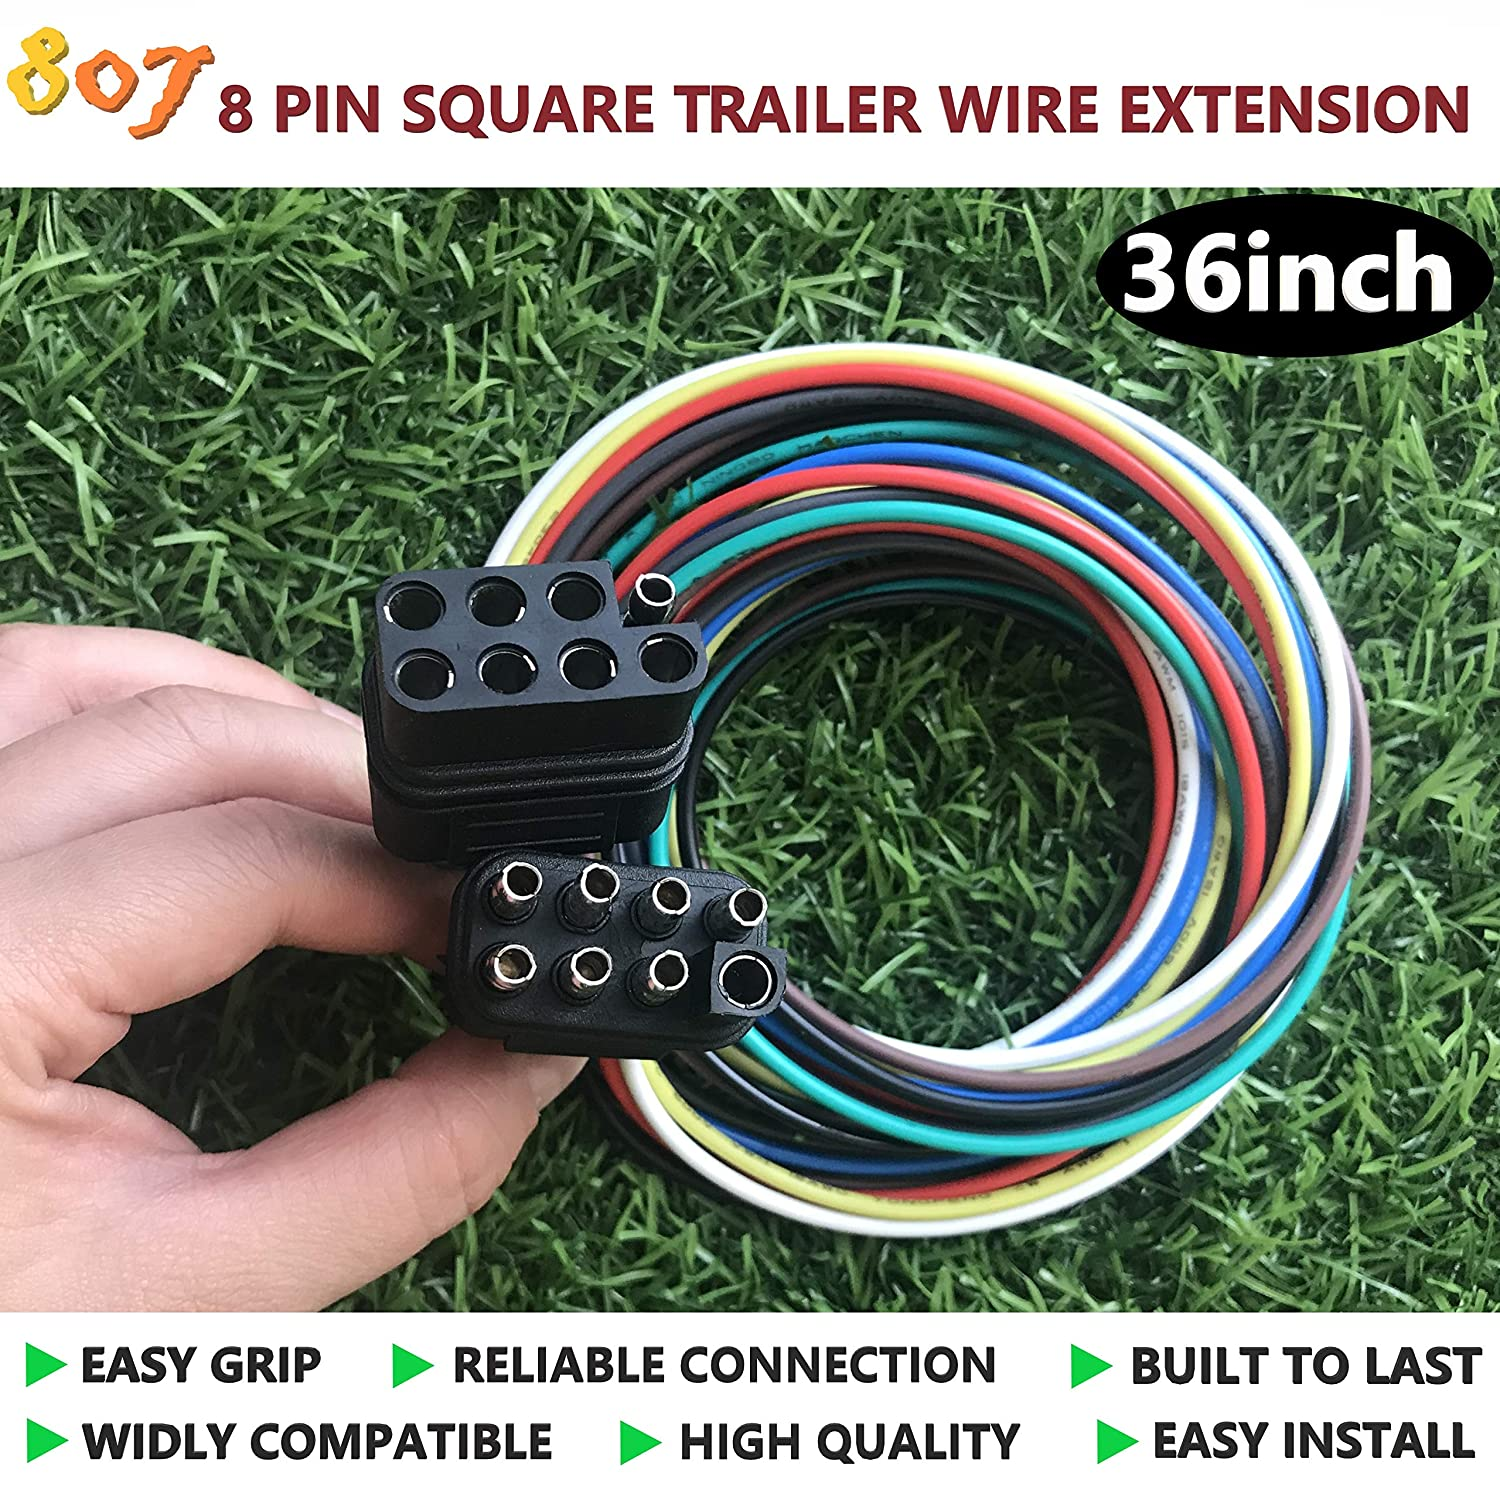 807 5-pin Trailer Wire Extension 36inch for LED ke ... on